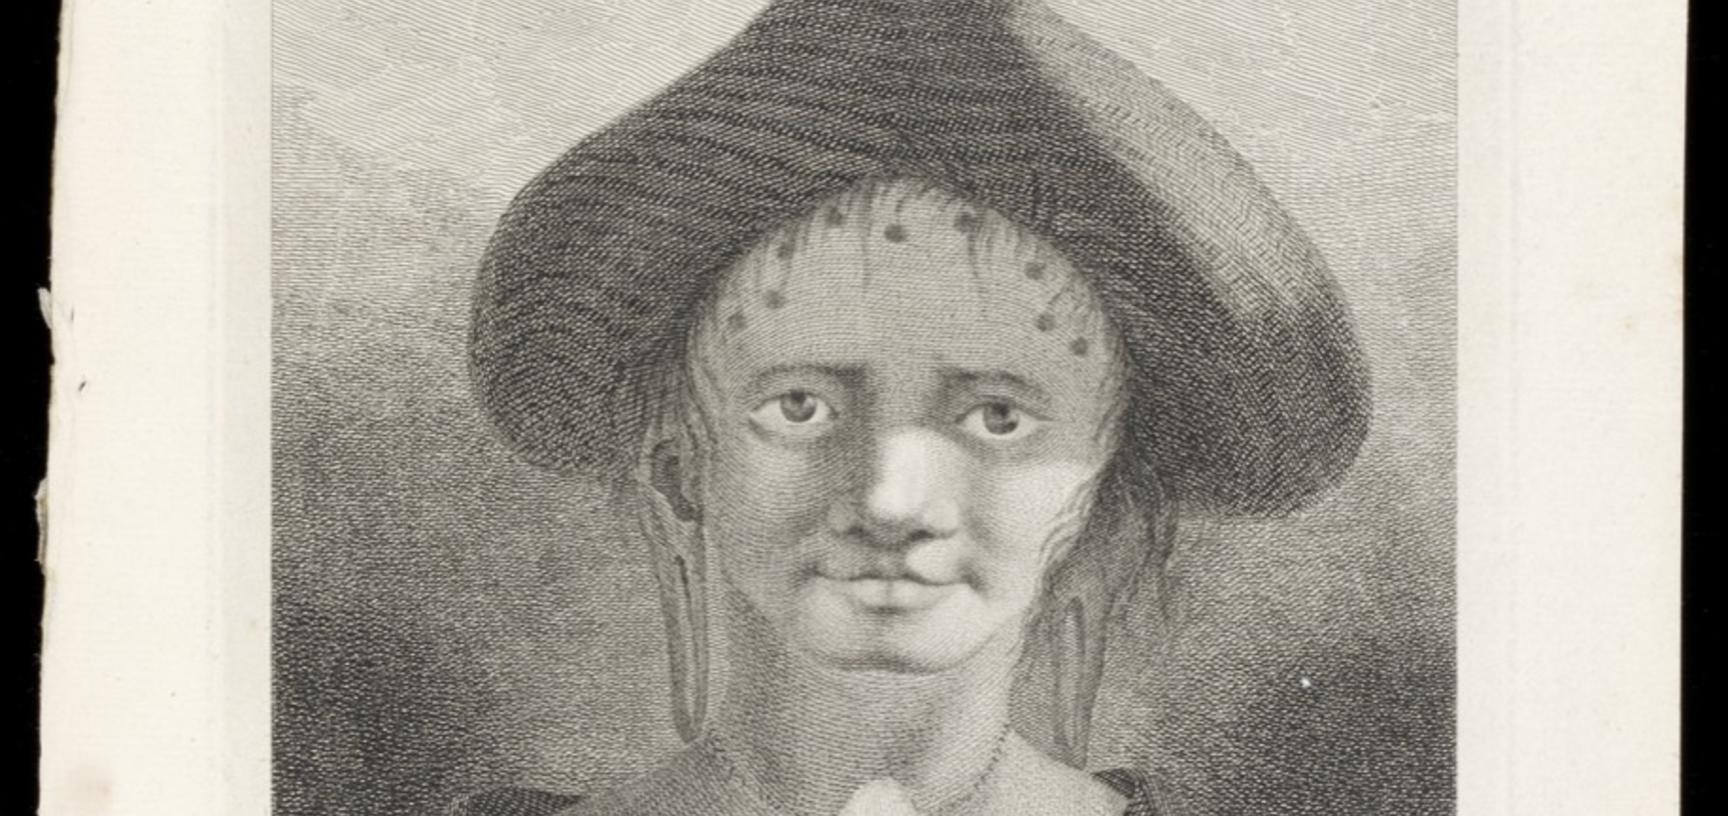 Woman of Rapa Nui (Easter Island) (name unknown), engraved for publication by James Caldwell after an original drawing by William Hodges.